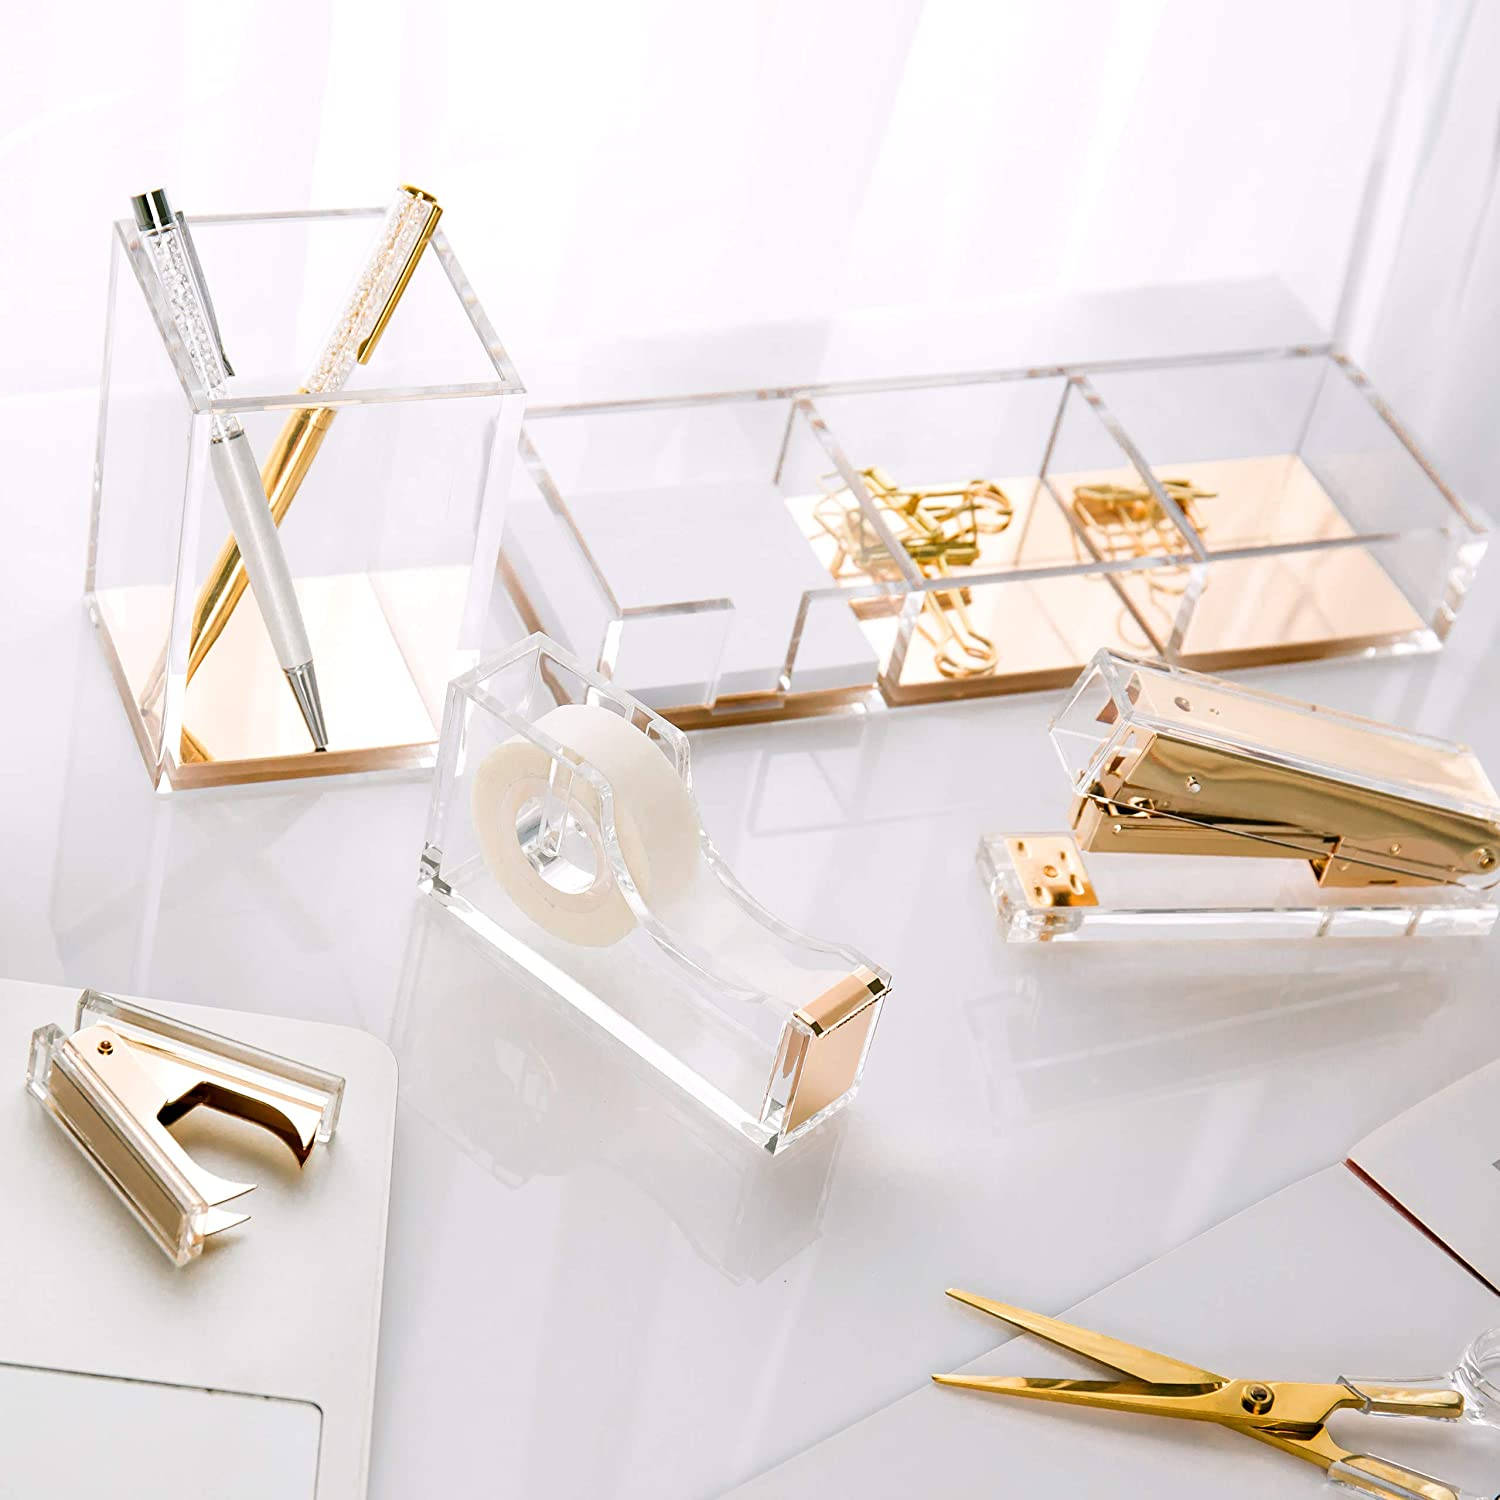 SIRMEDAL Chic Ultra Clear Acrylic and Gold Staple Remover for Office School Home, Desk Accessories. : Office Products